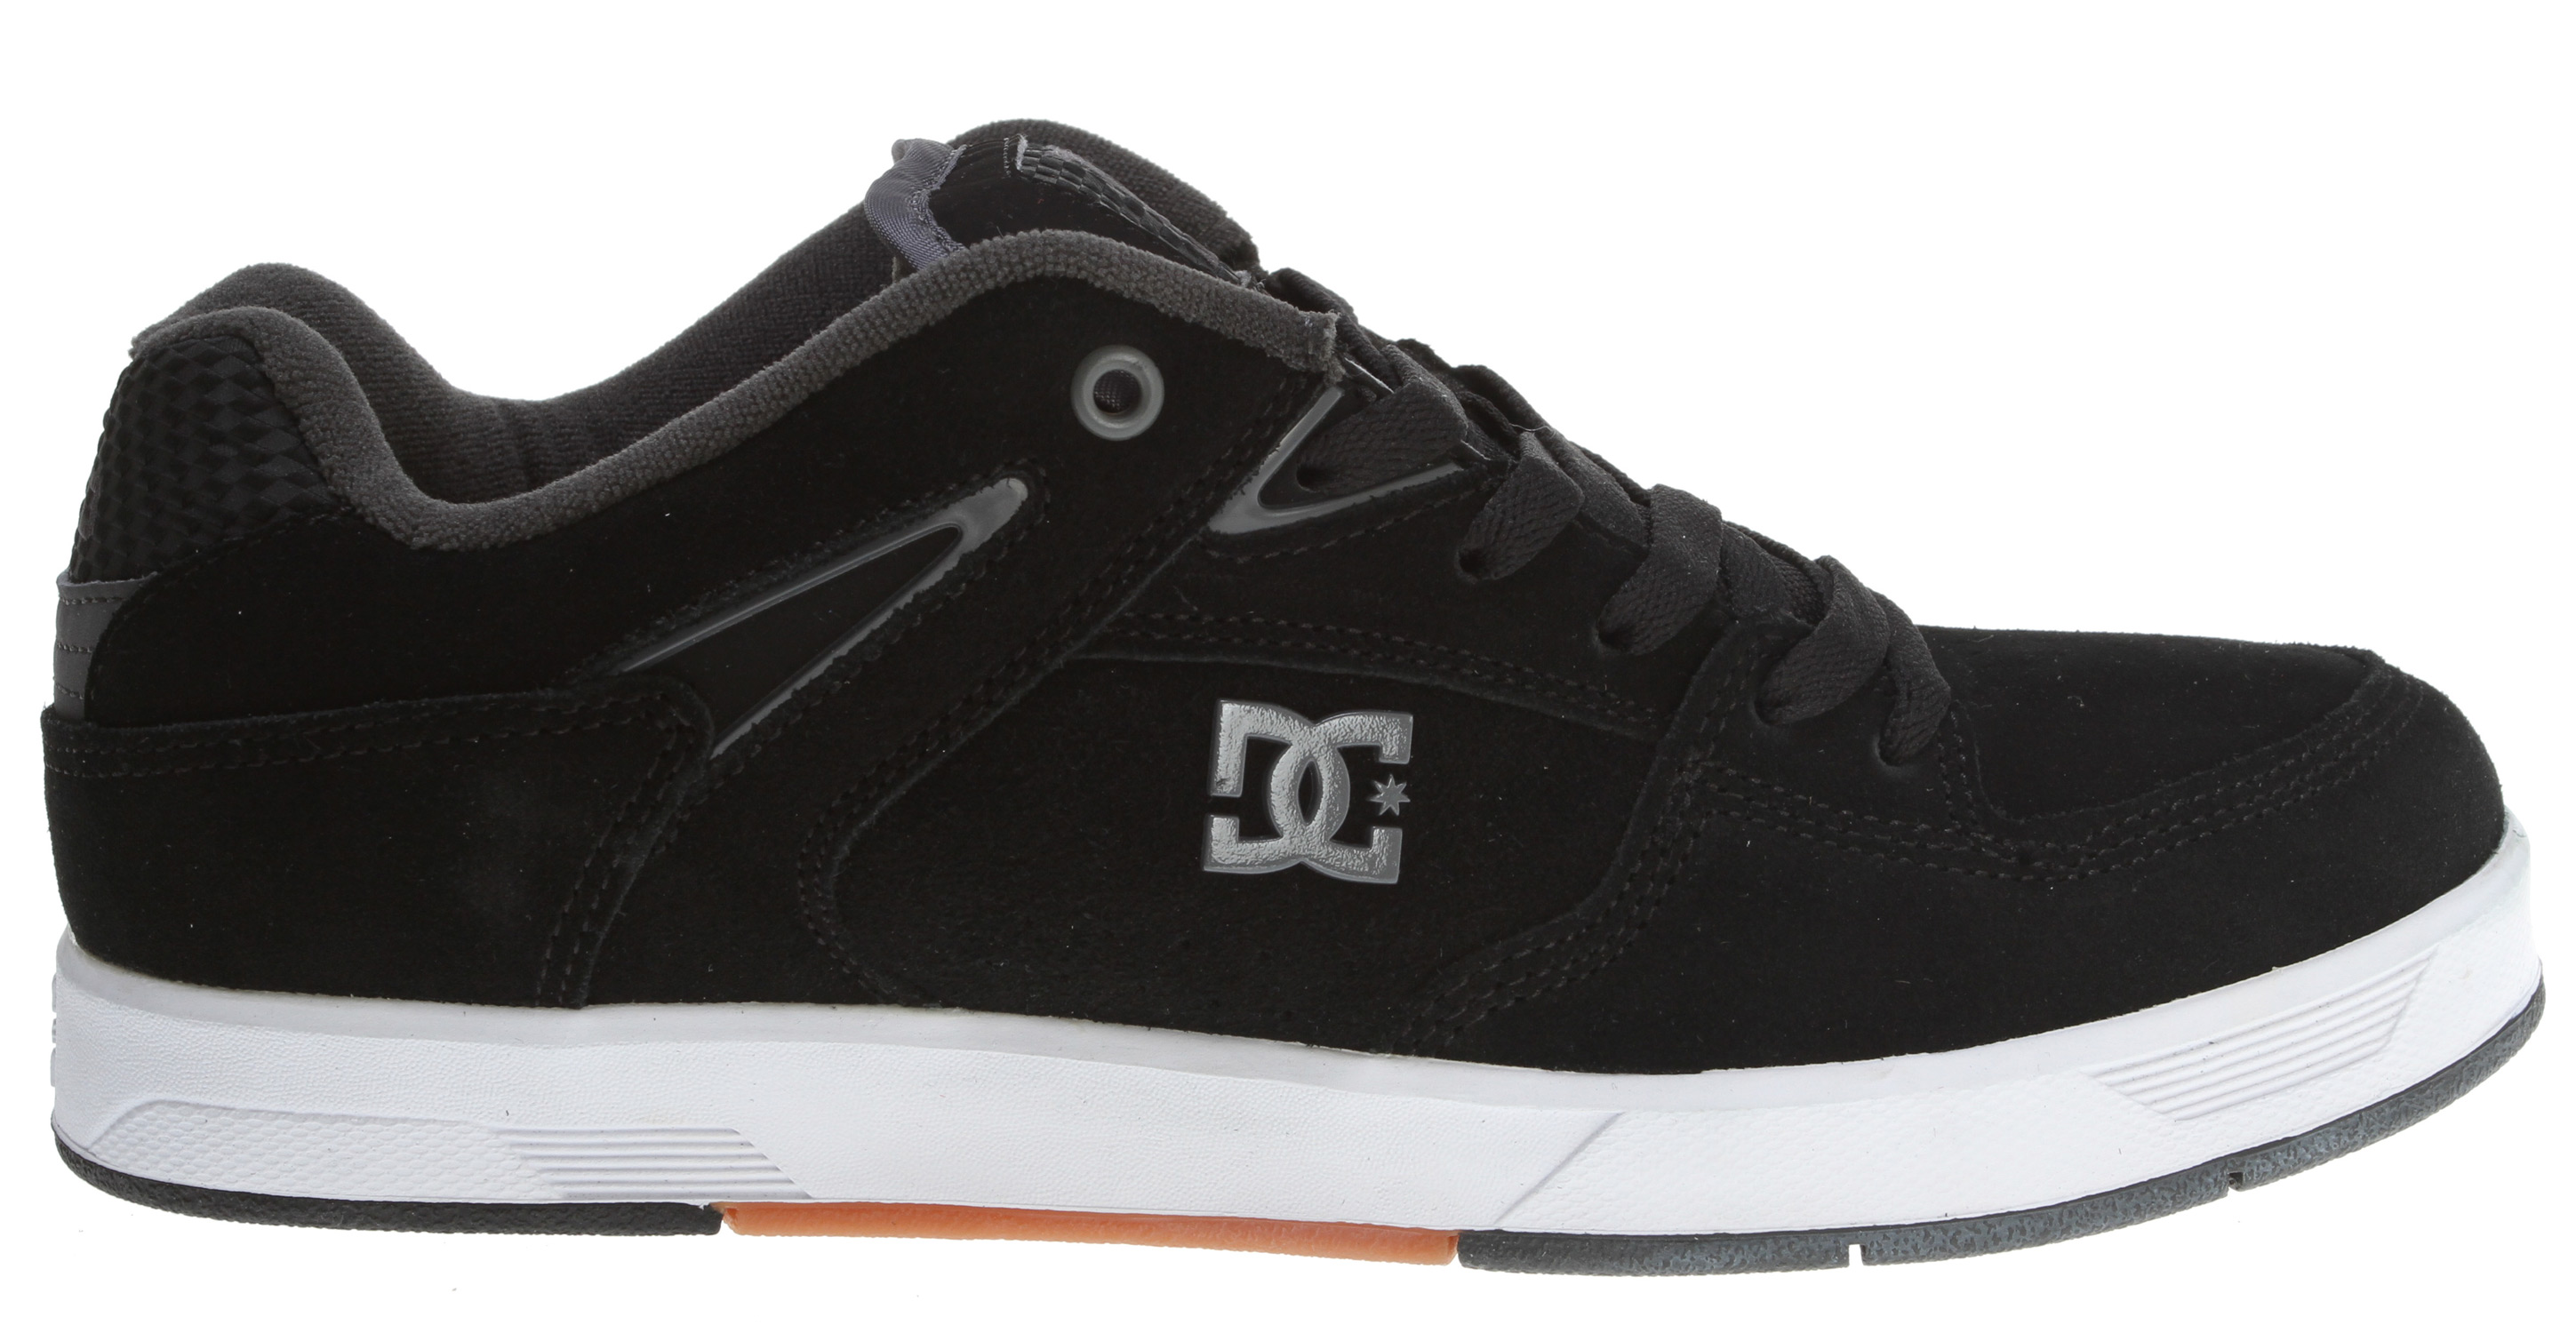 Skateboard Key Features of the DC ND1 S Skate Shoes: Super Suede Soft resilient action leather Vent holes in upper for airflow Padded tongue and collar Skate performance insole Heel impact protection gel DGT 123 - $35.96